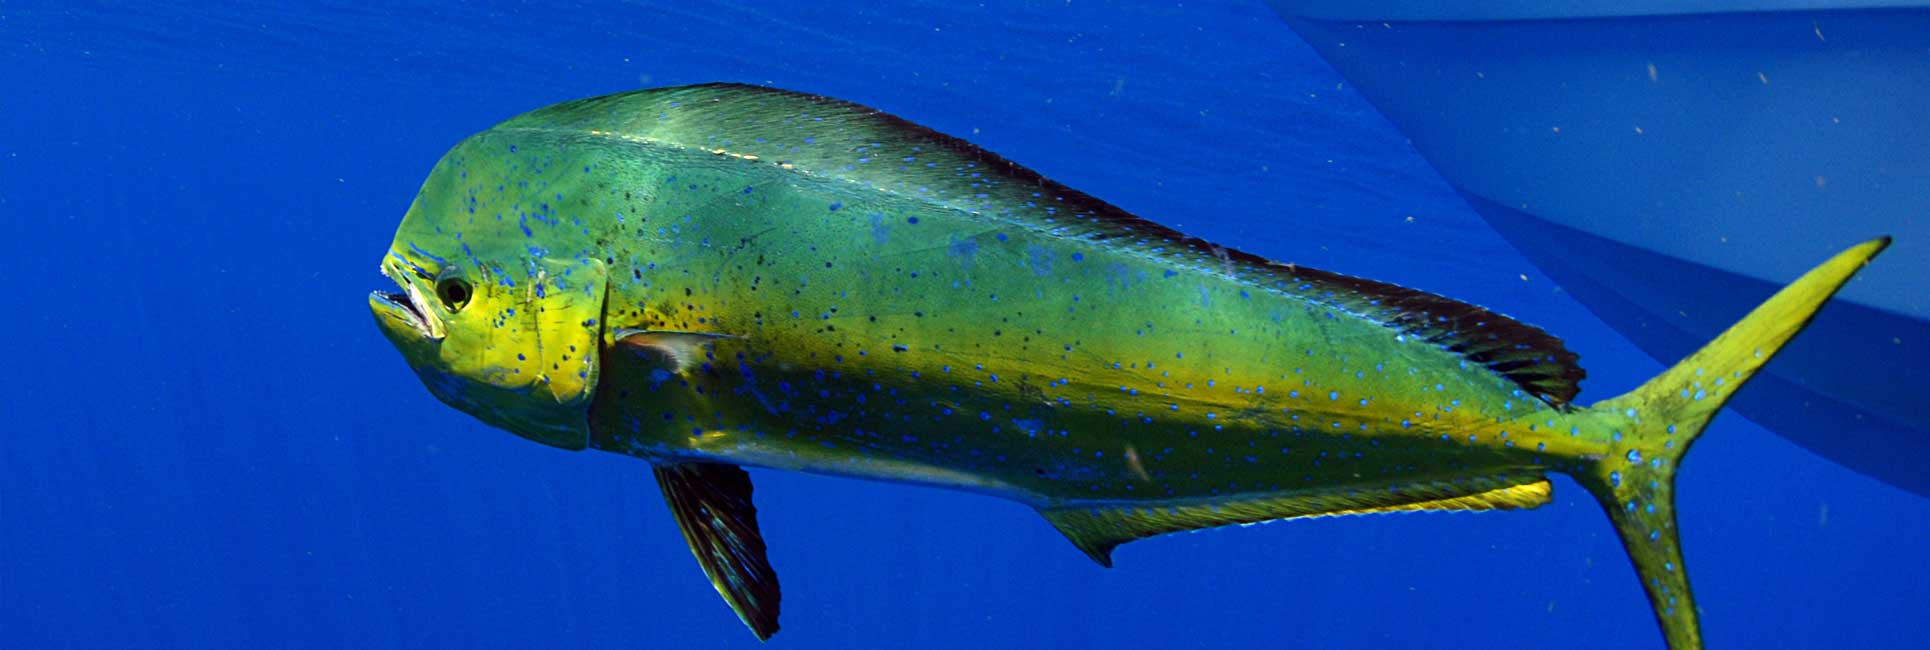 A Mahi Mahi swimming the the ocean with blue clear water background